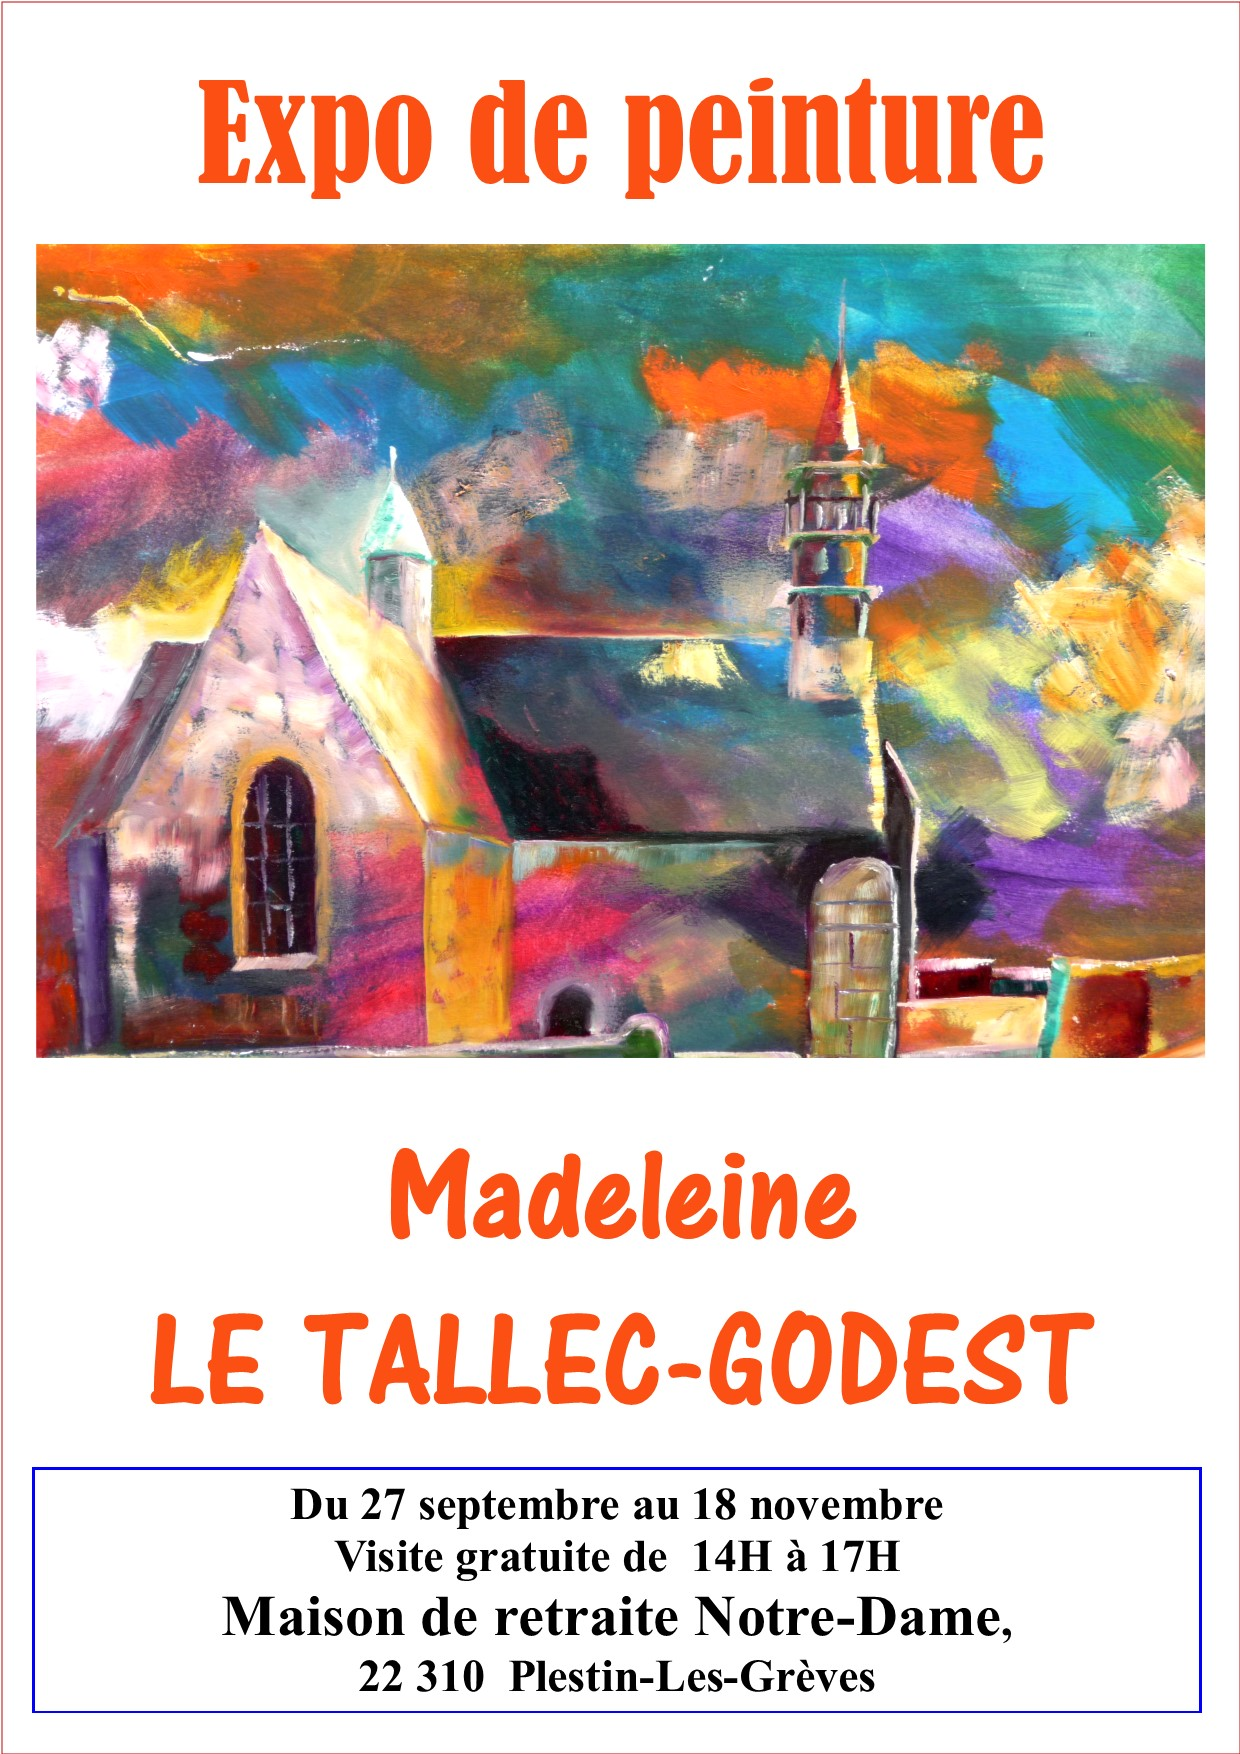 Madelaine Le Tallec